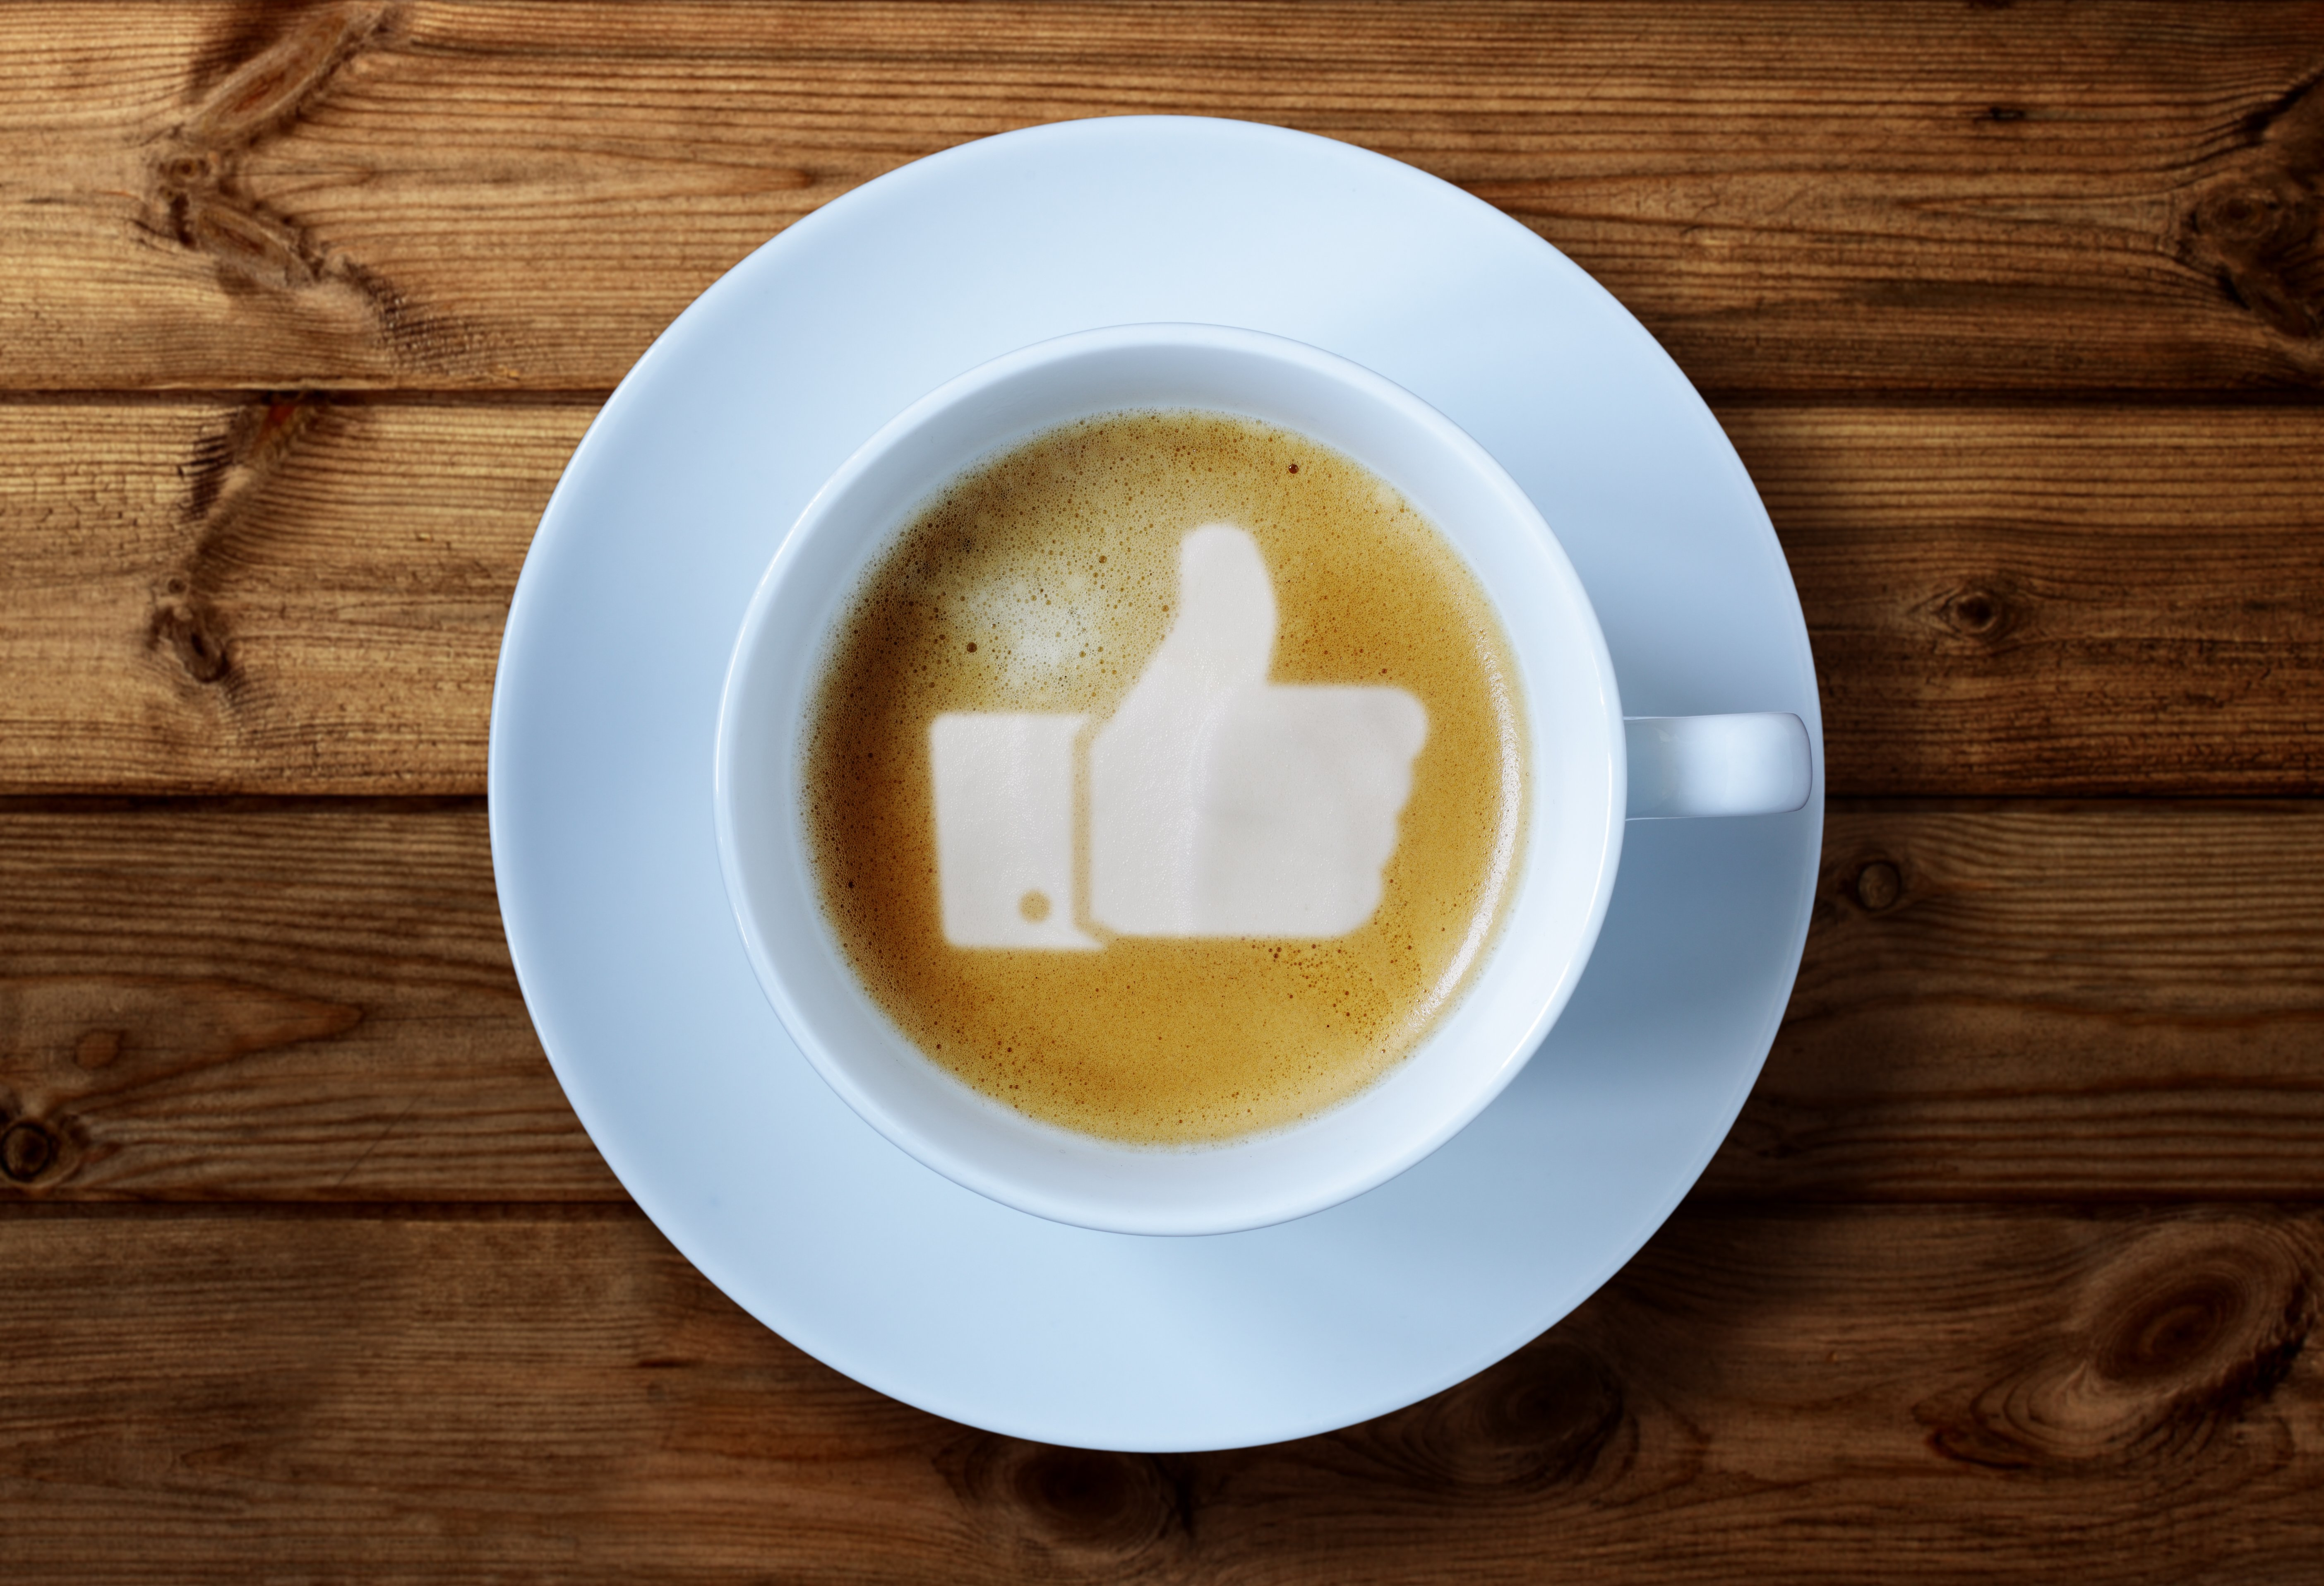 Thumbs up or like symbol in coffee froth on a wooden table background